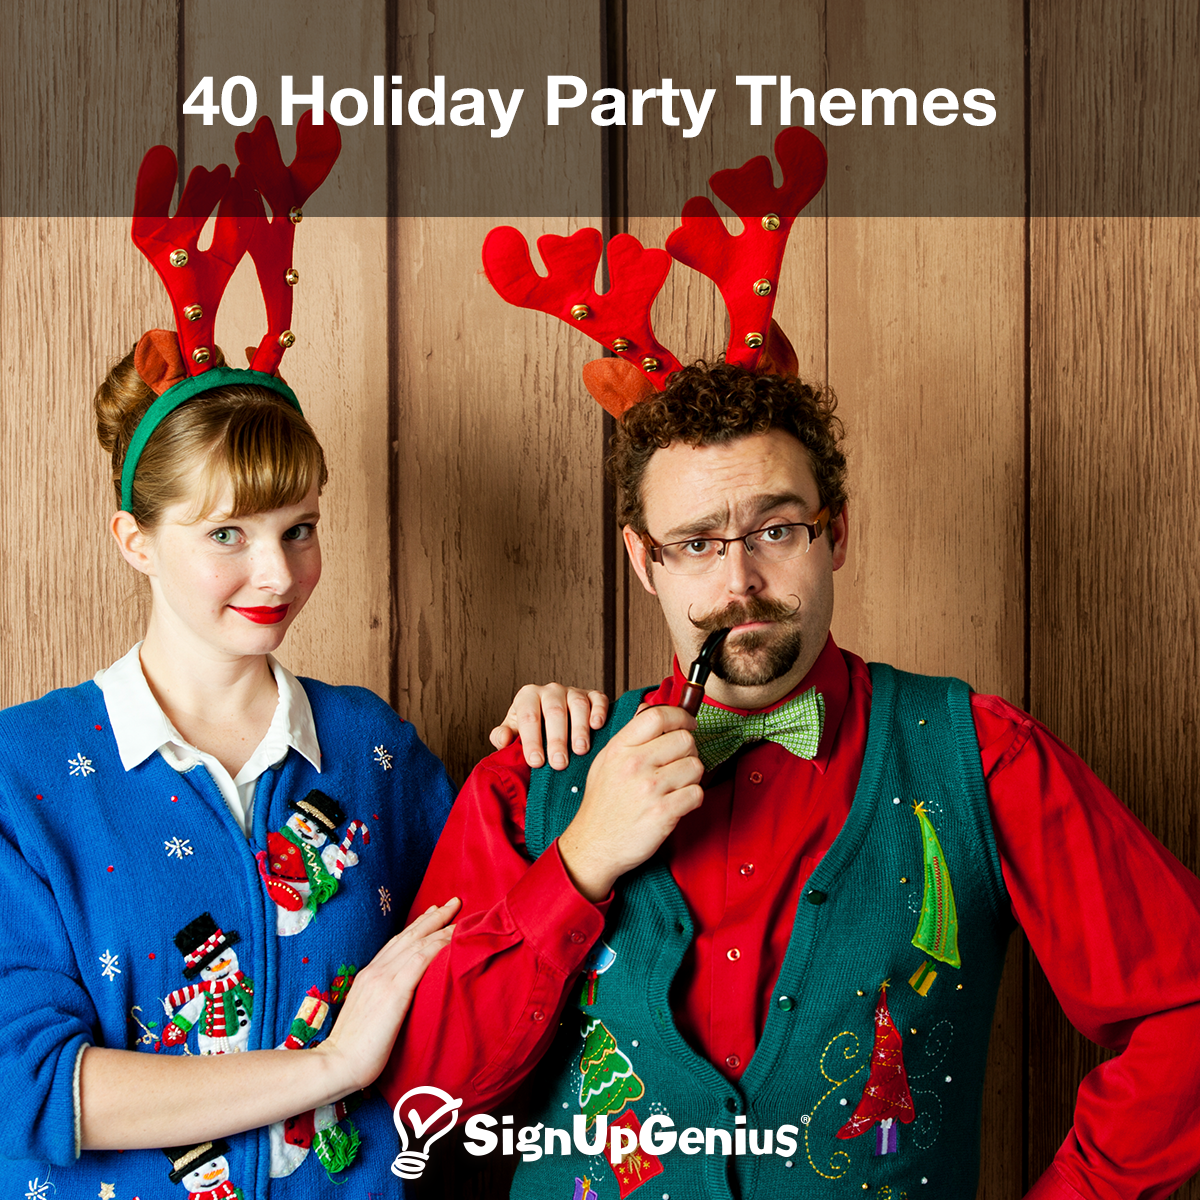 40 Fun Holiday Party Themes 40 Fun Holiday Party Themes to Take Your Christmas Celebration to the Next Level.